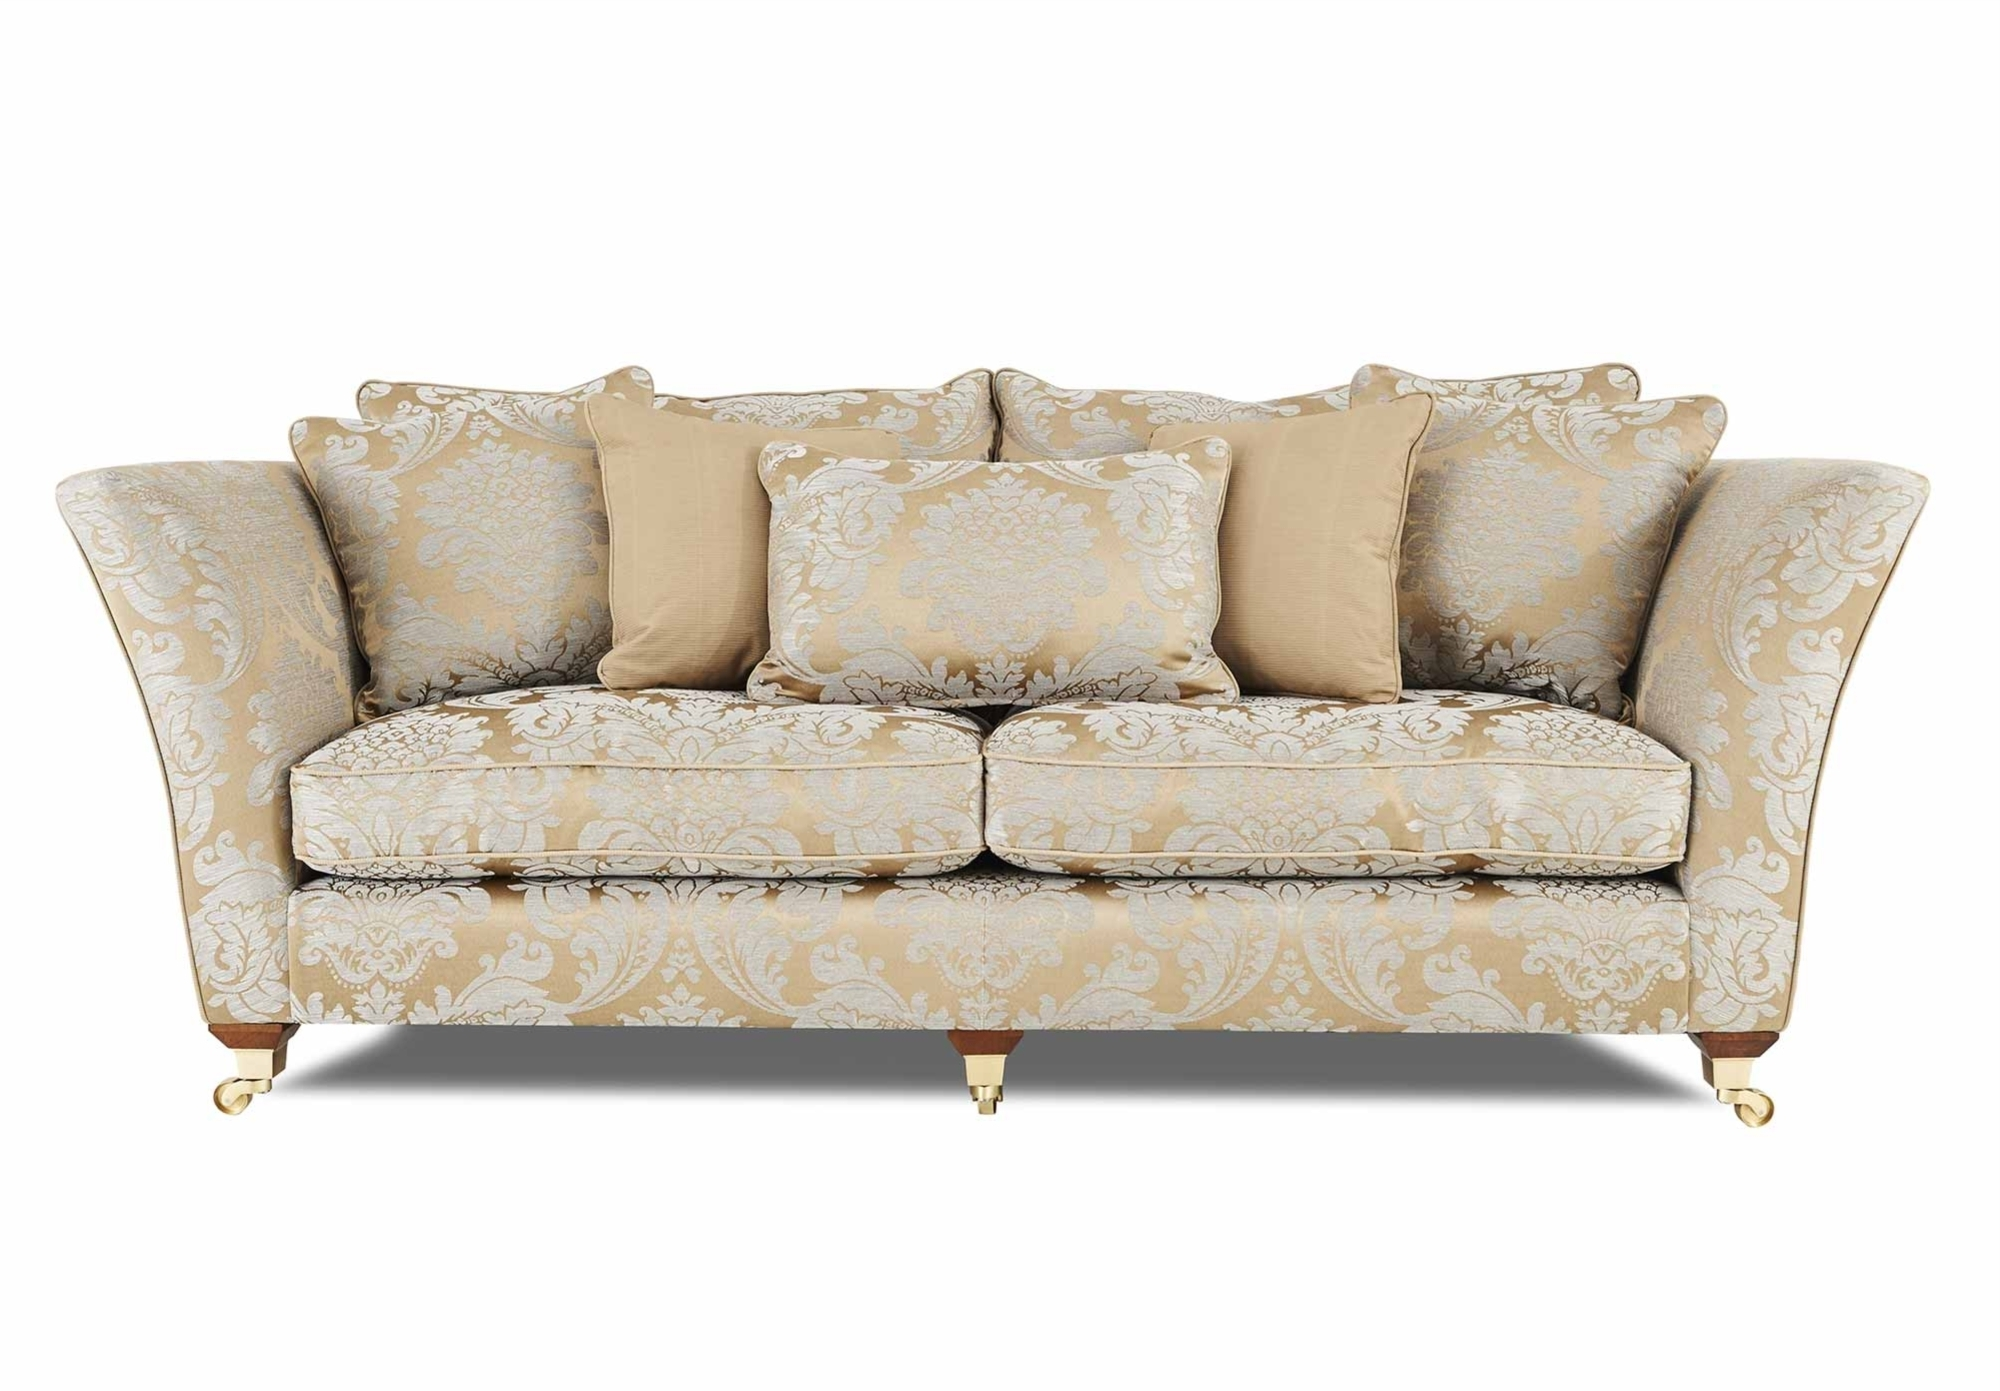 Most Current Kijiji Kitchener Sectional Sofas With Regard To Furniture : Contemporary Modern Tufted Sofa Delano 120 Tufted (View 10 of 15)